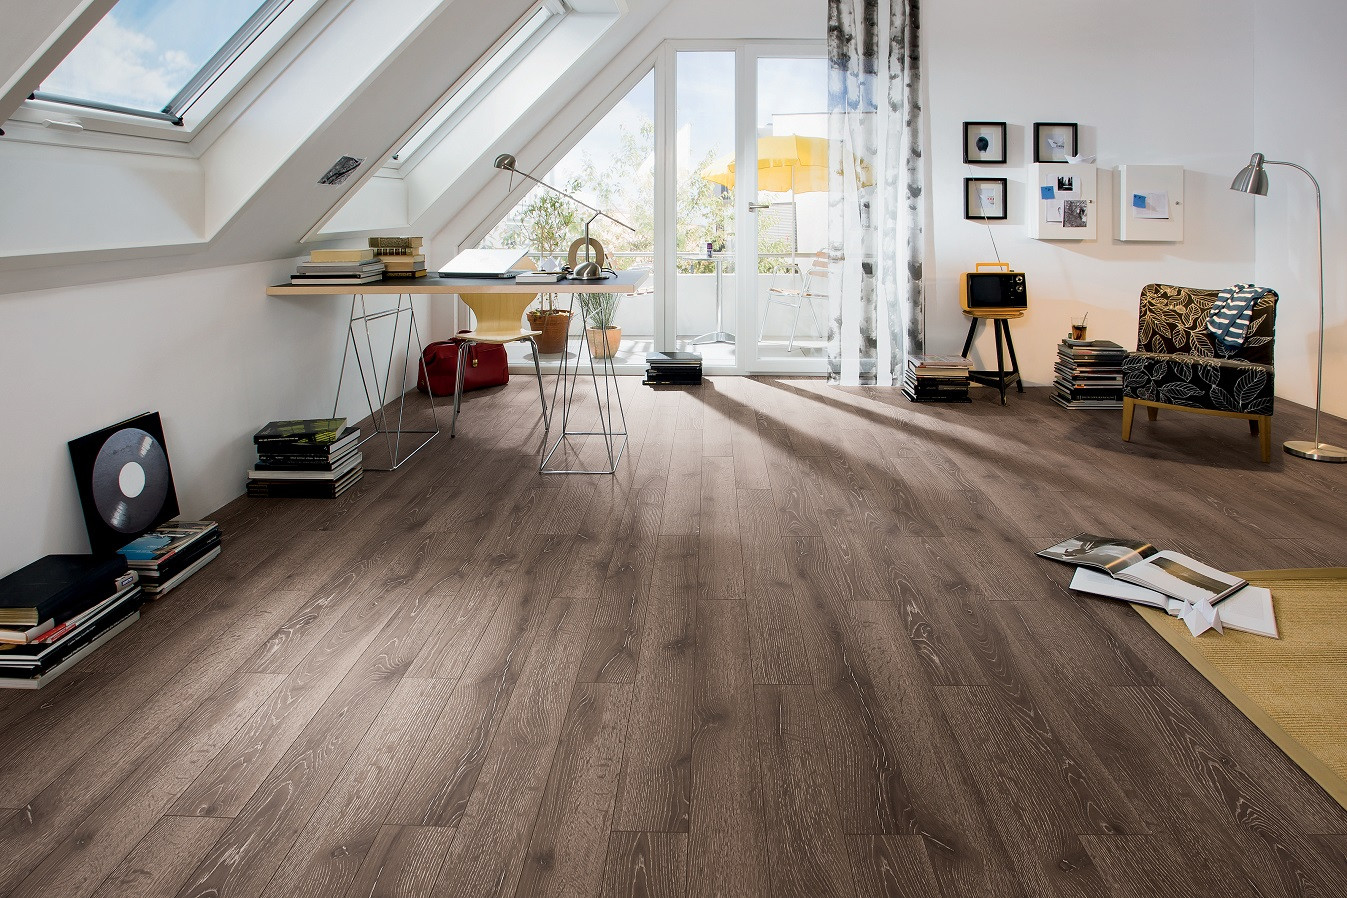 hardwood flooring los angeles ca of ca laminate flooring california wood floor boards san jose los regarding ca best place to buy hardwood flooring